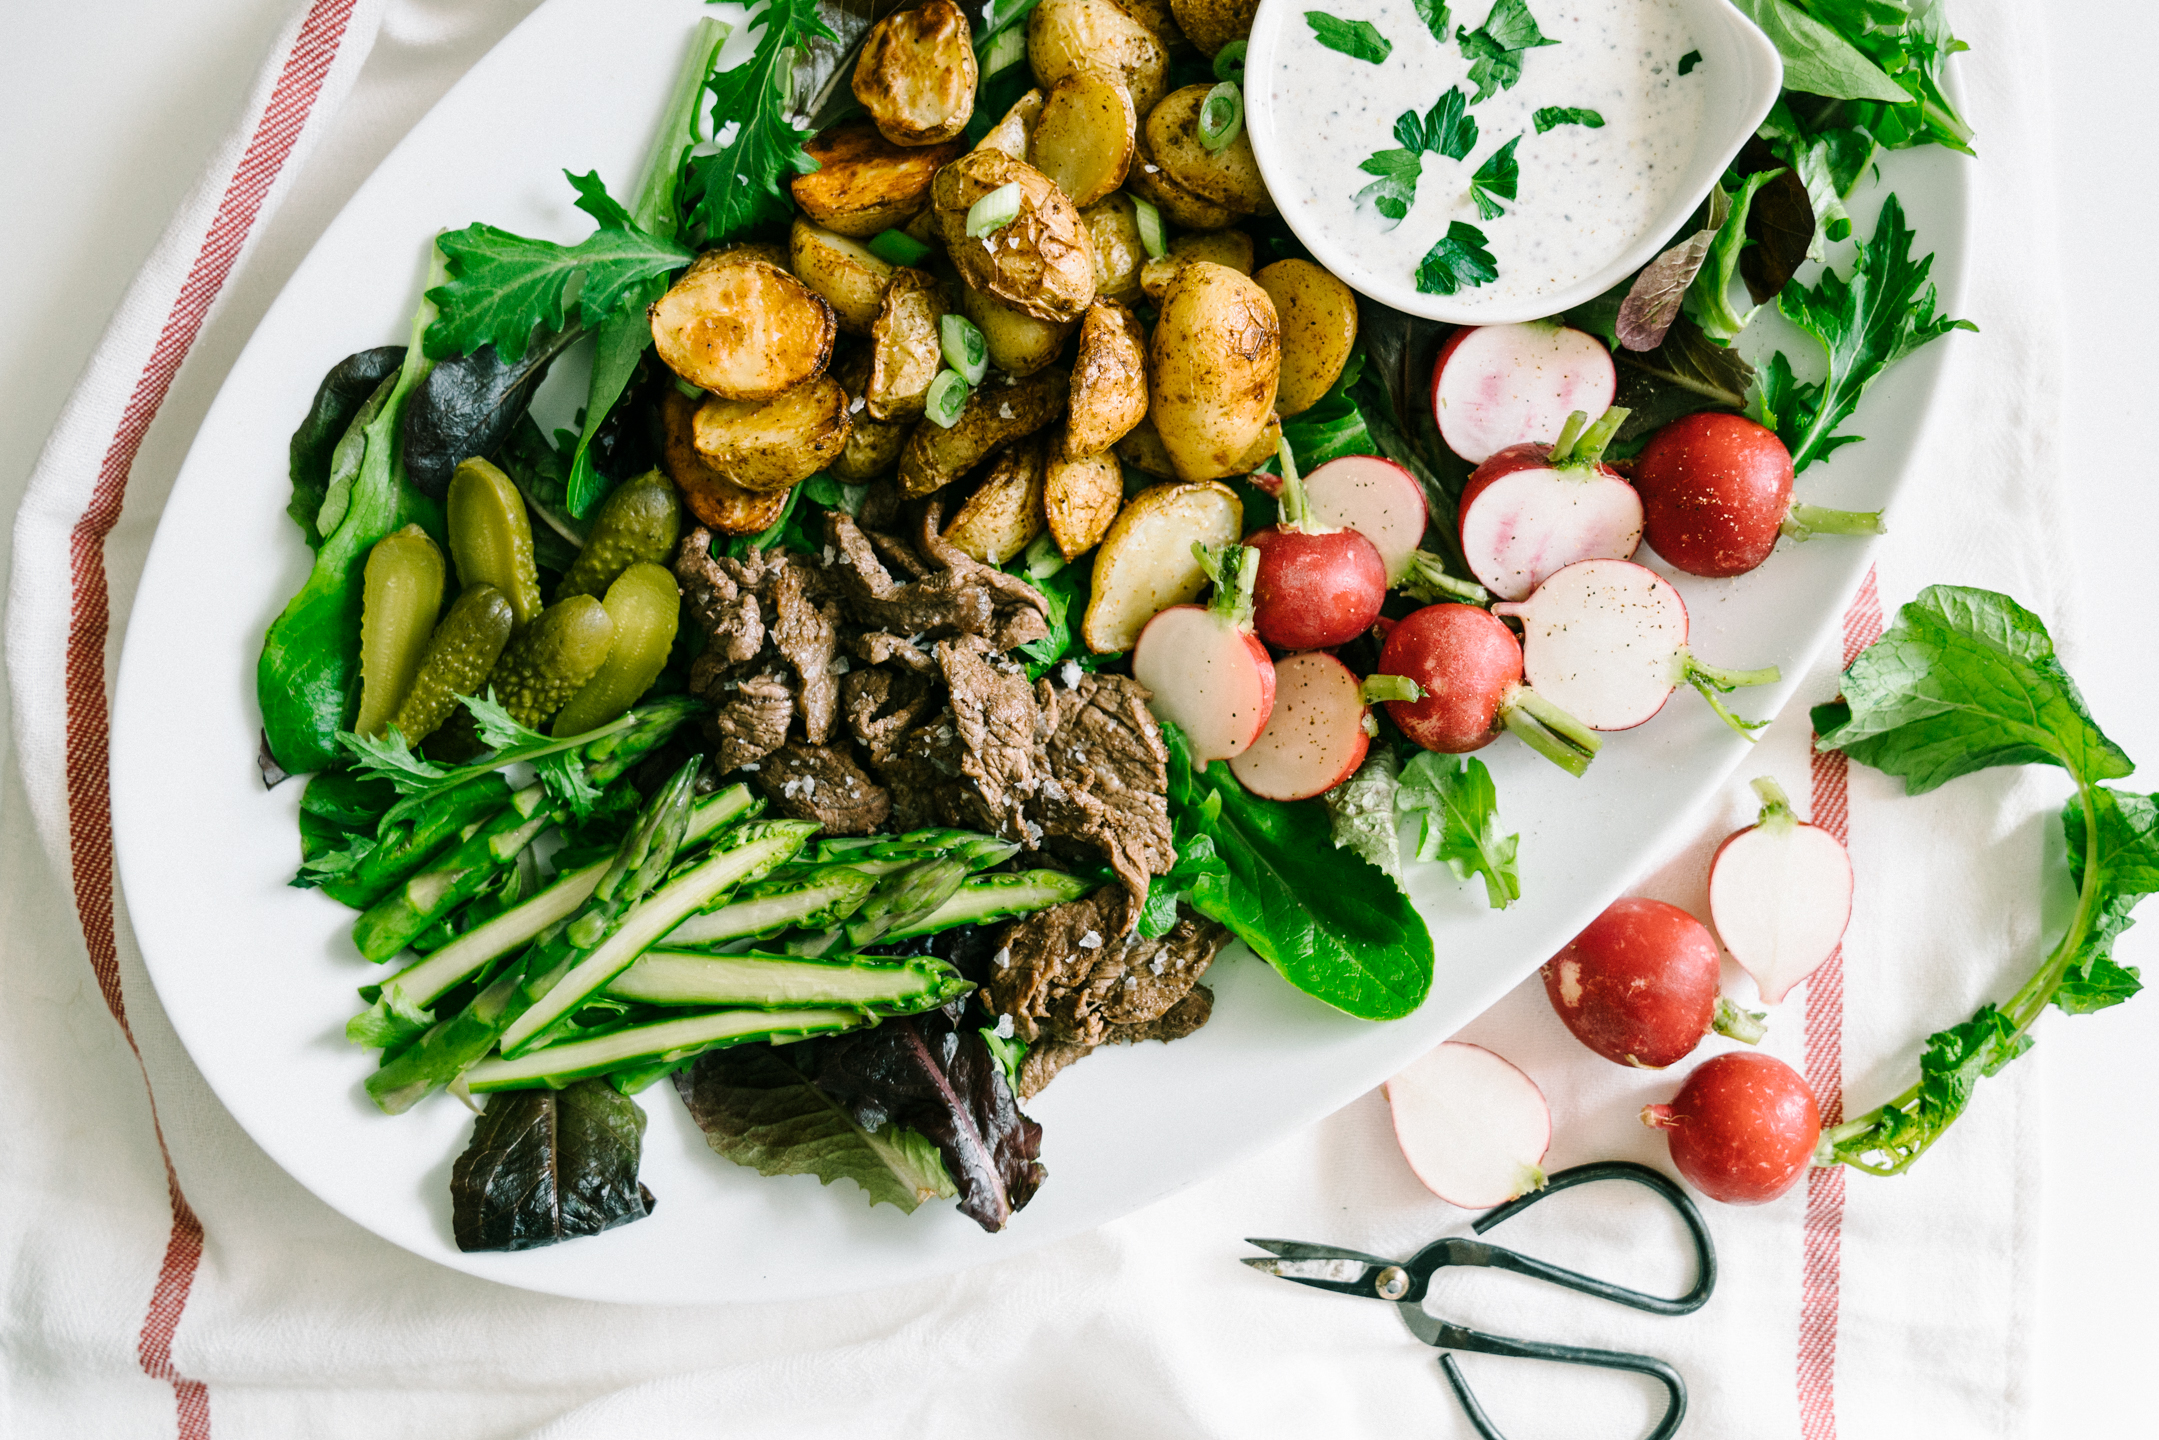 SPRING VEGETABLE AND BABY POTATO SALAD